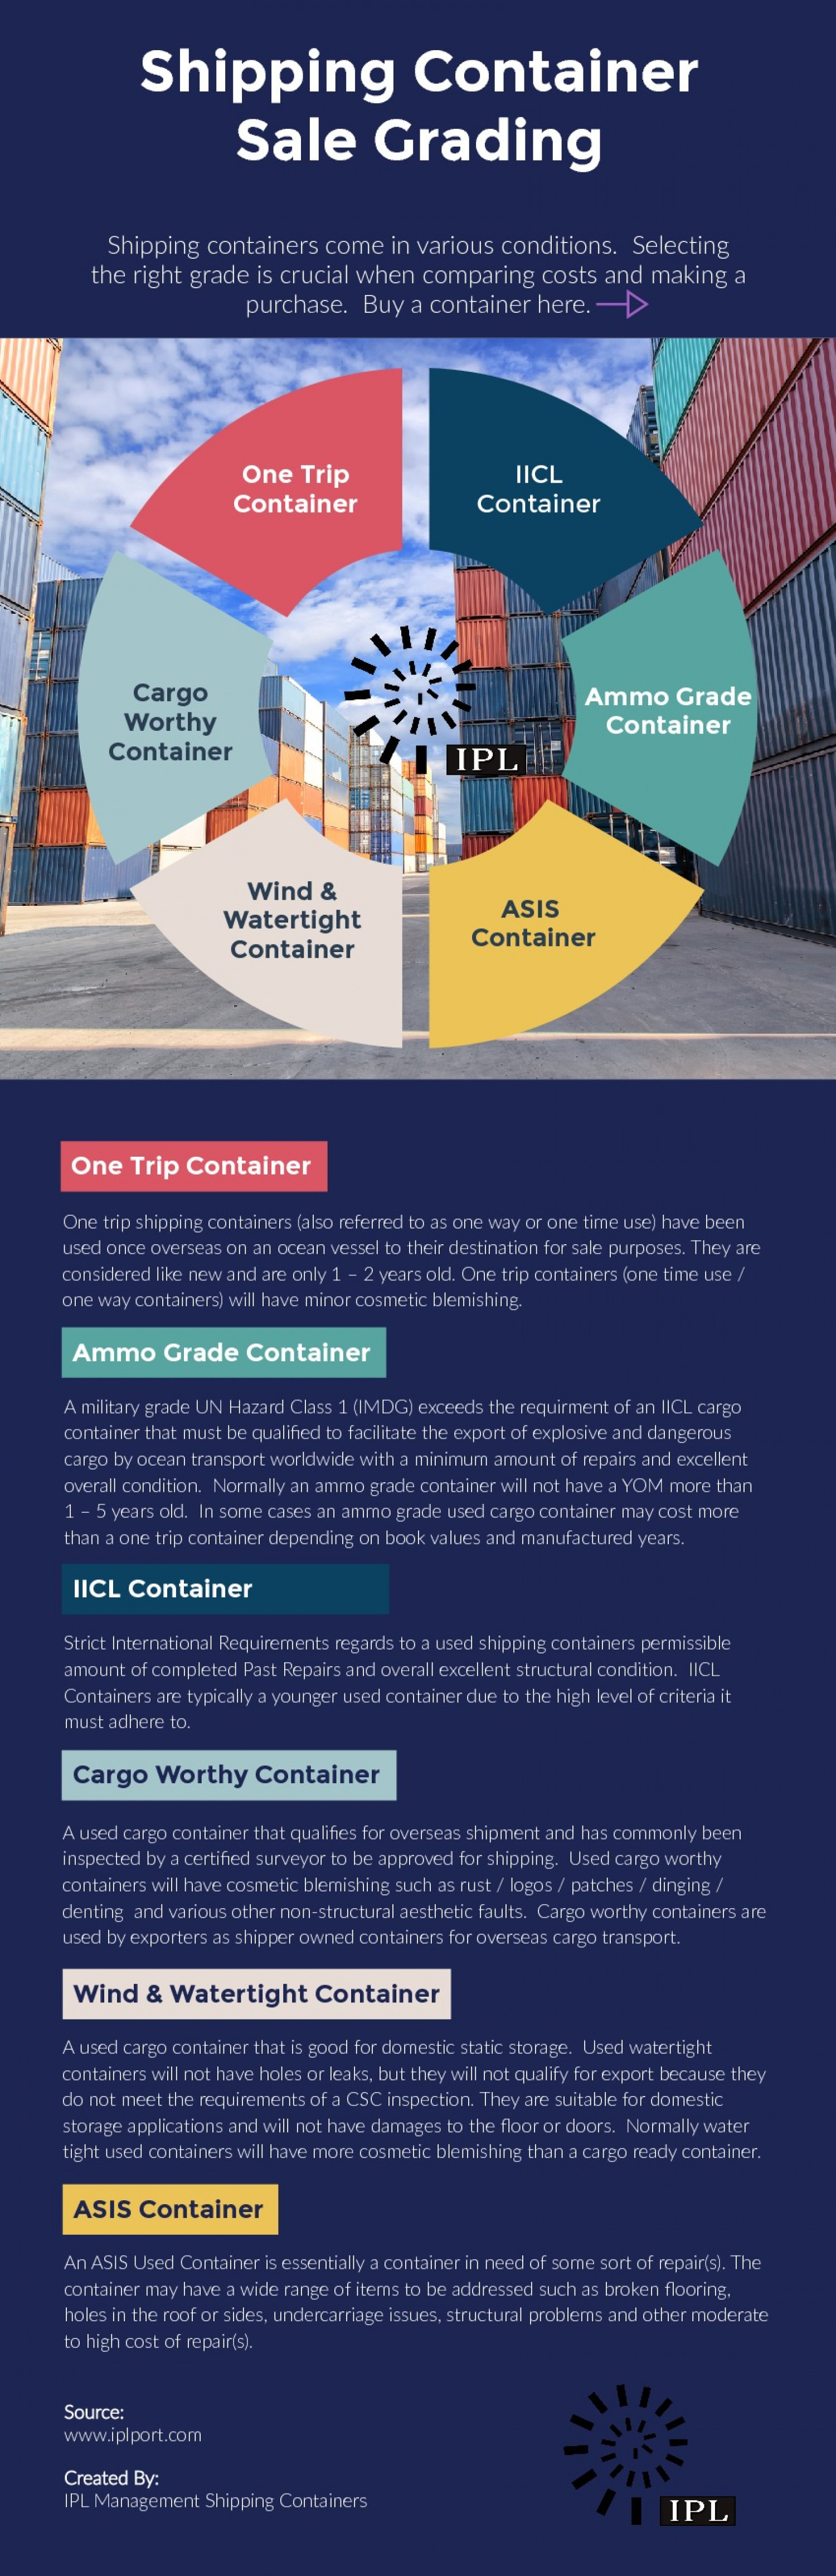 Shipping Container Categories Infographic